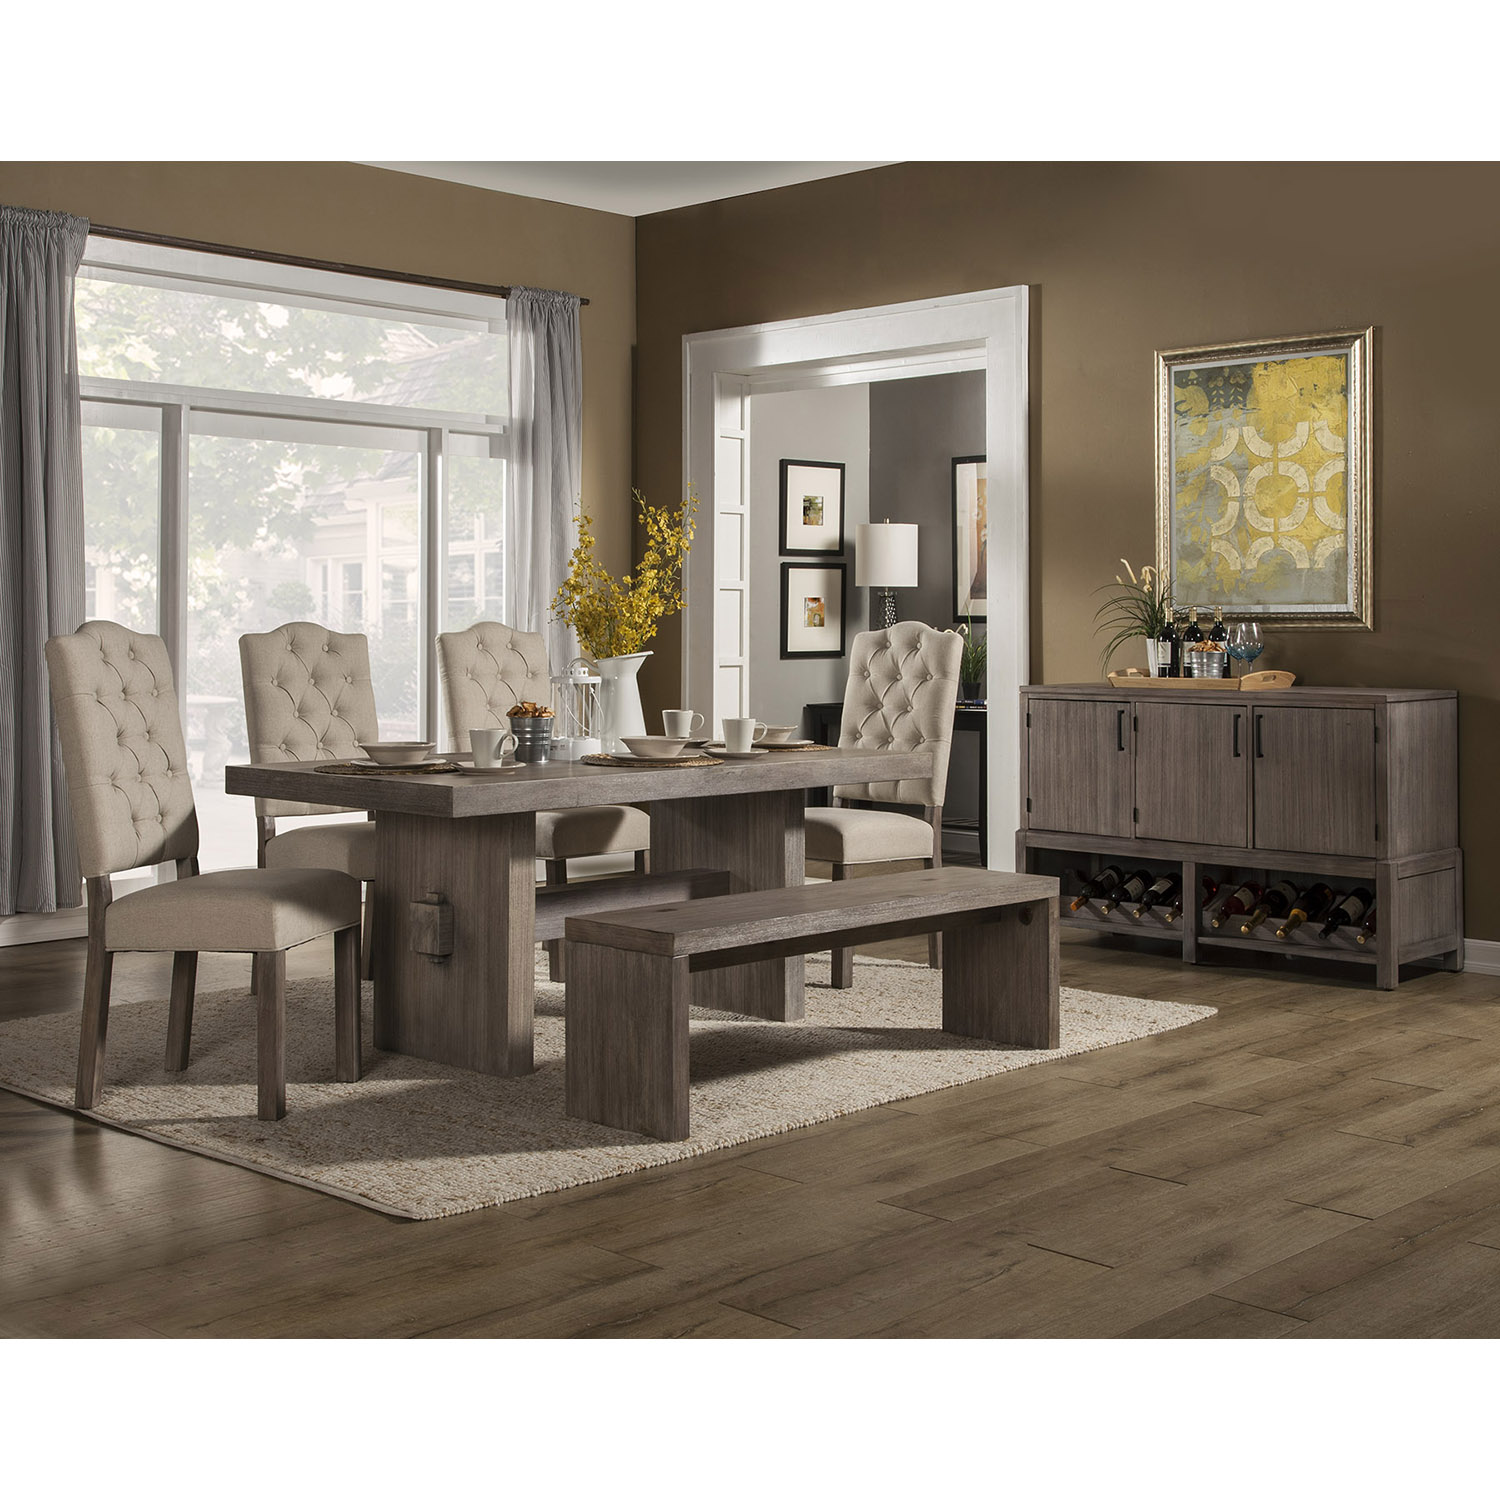 Fiji 5-Piece Dining Set - Weathered Gray